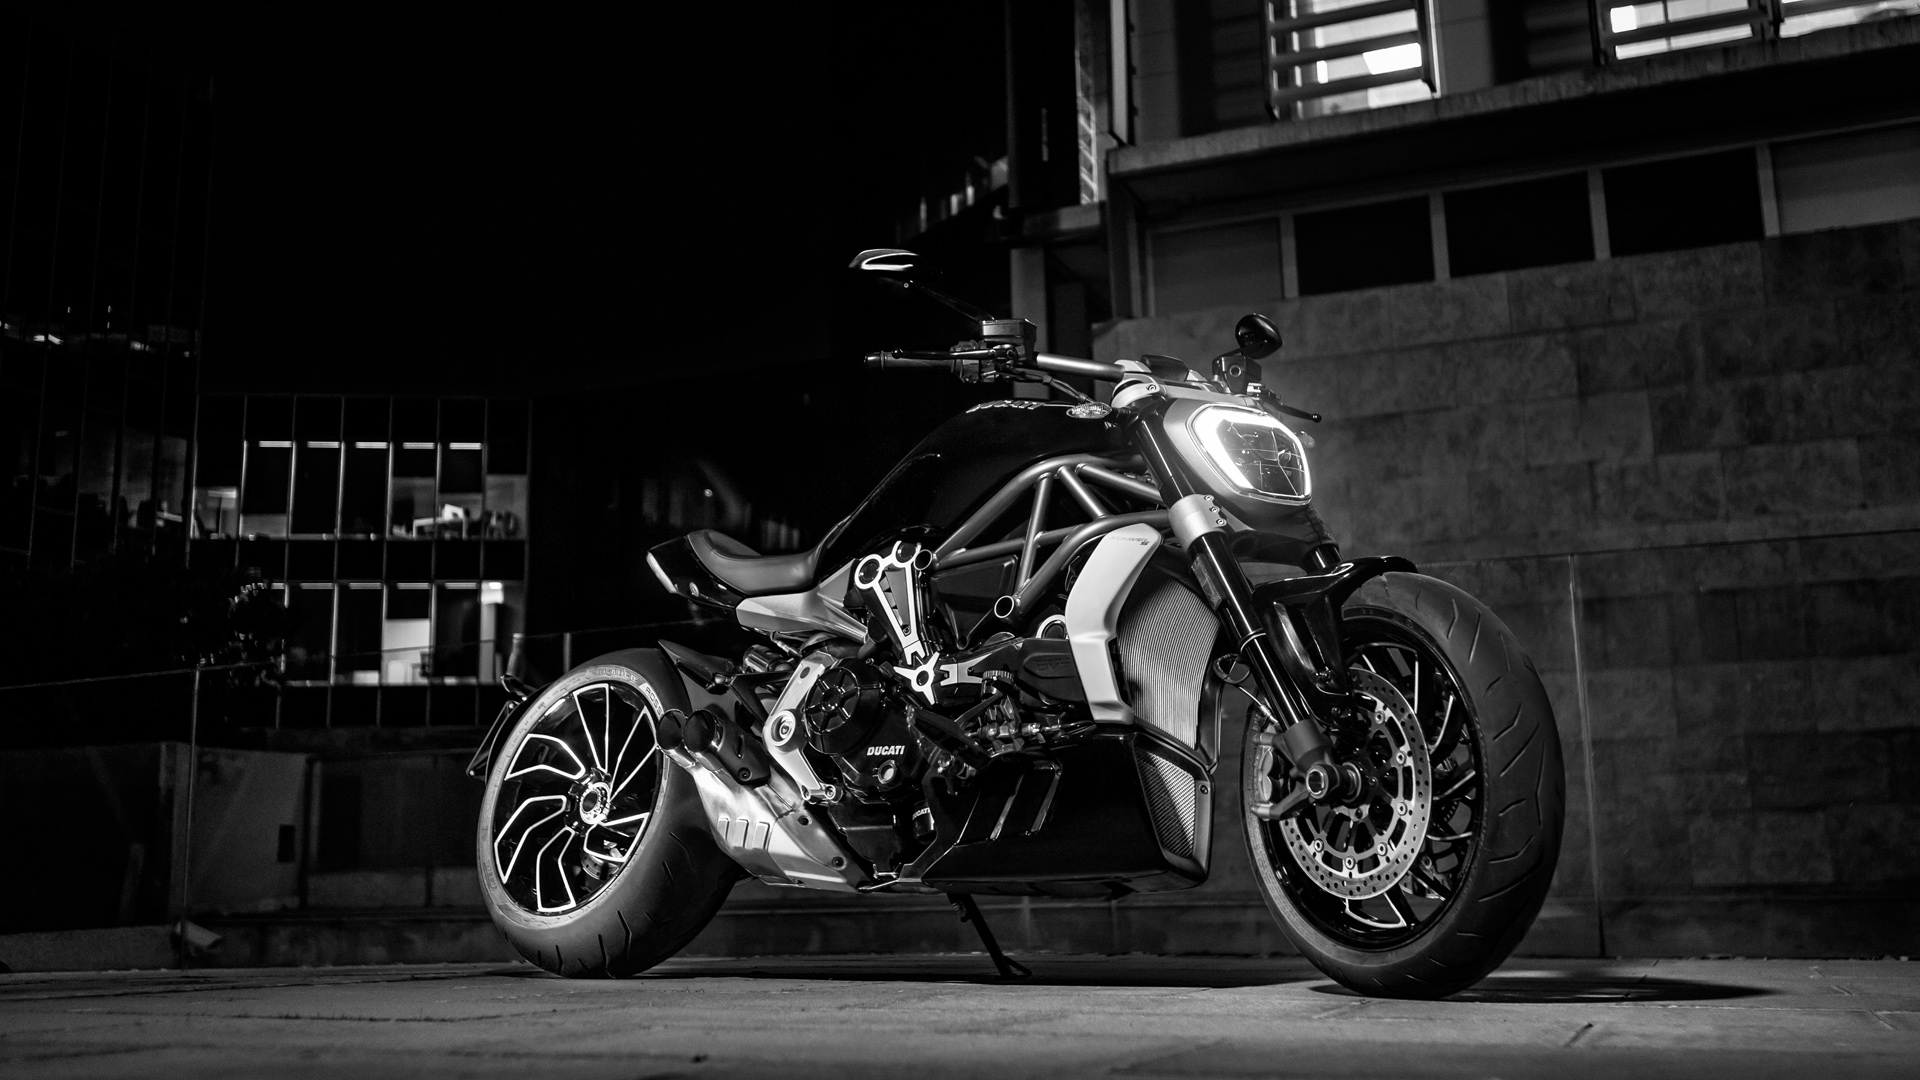 Ducati Xdiavel Unique Sport Cruiser Bikes Cool Bike Stroke Wiring Diagram The By Numbers